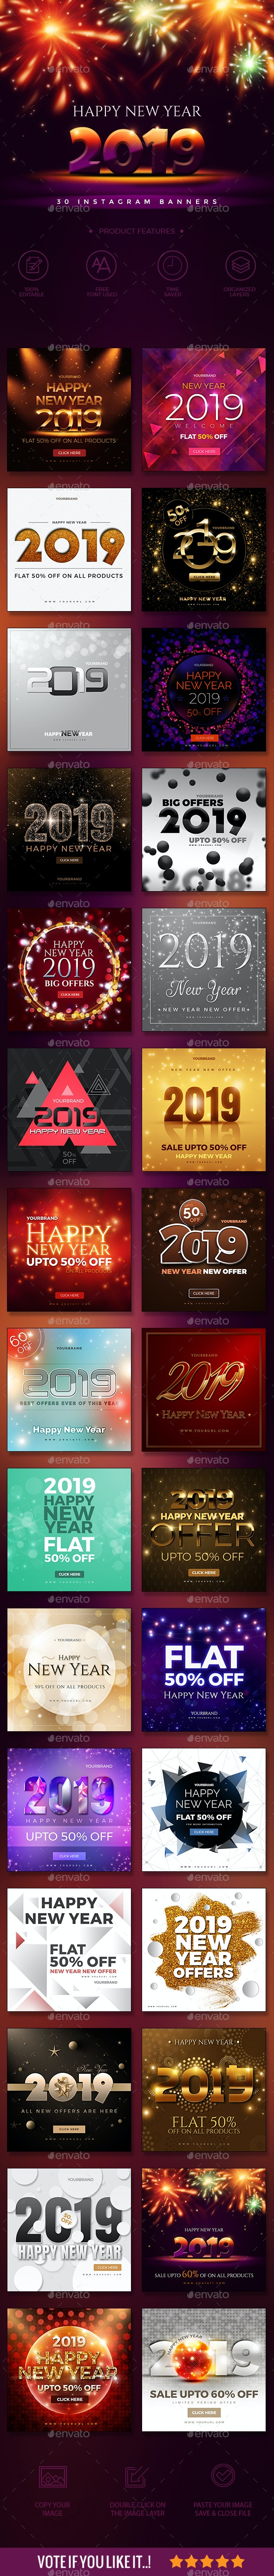 Instagram New Year Banners - Social Media Web Elements